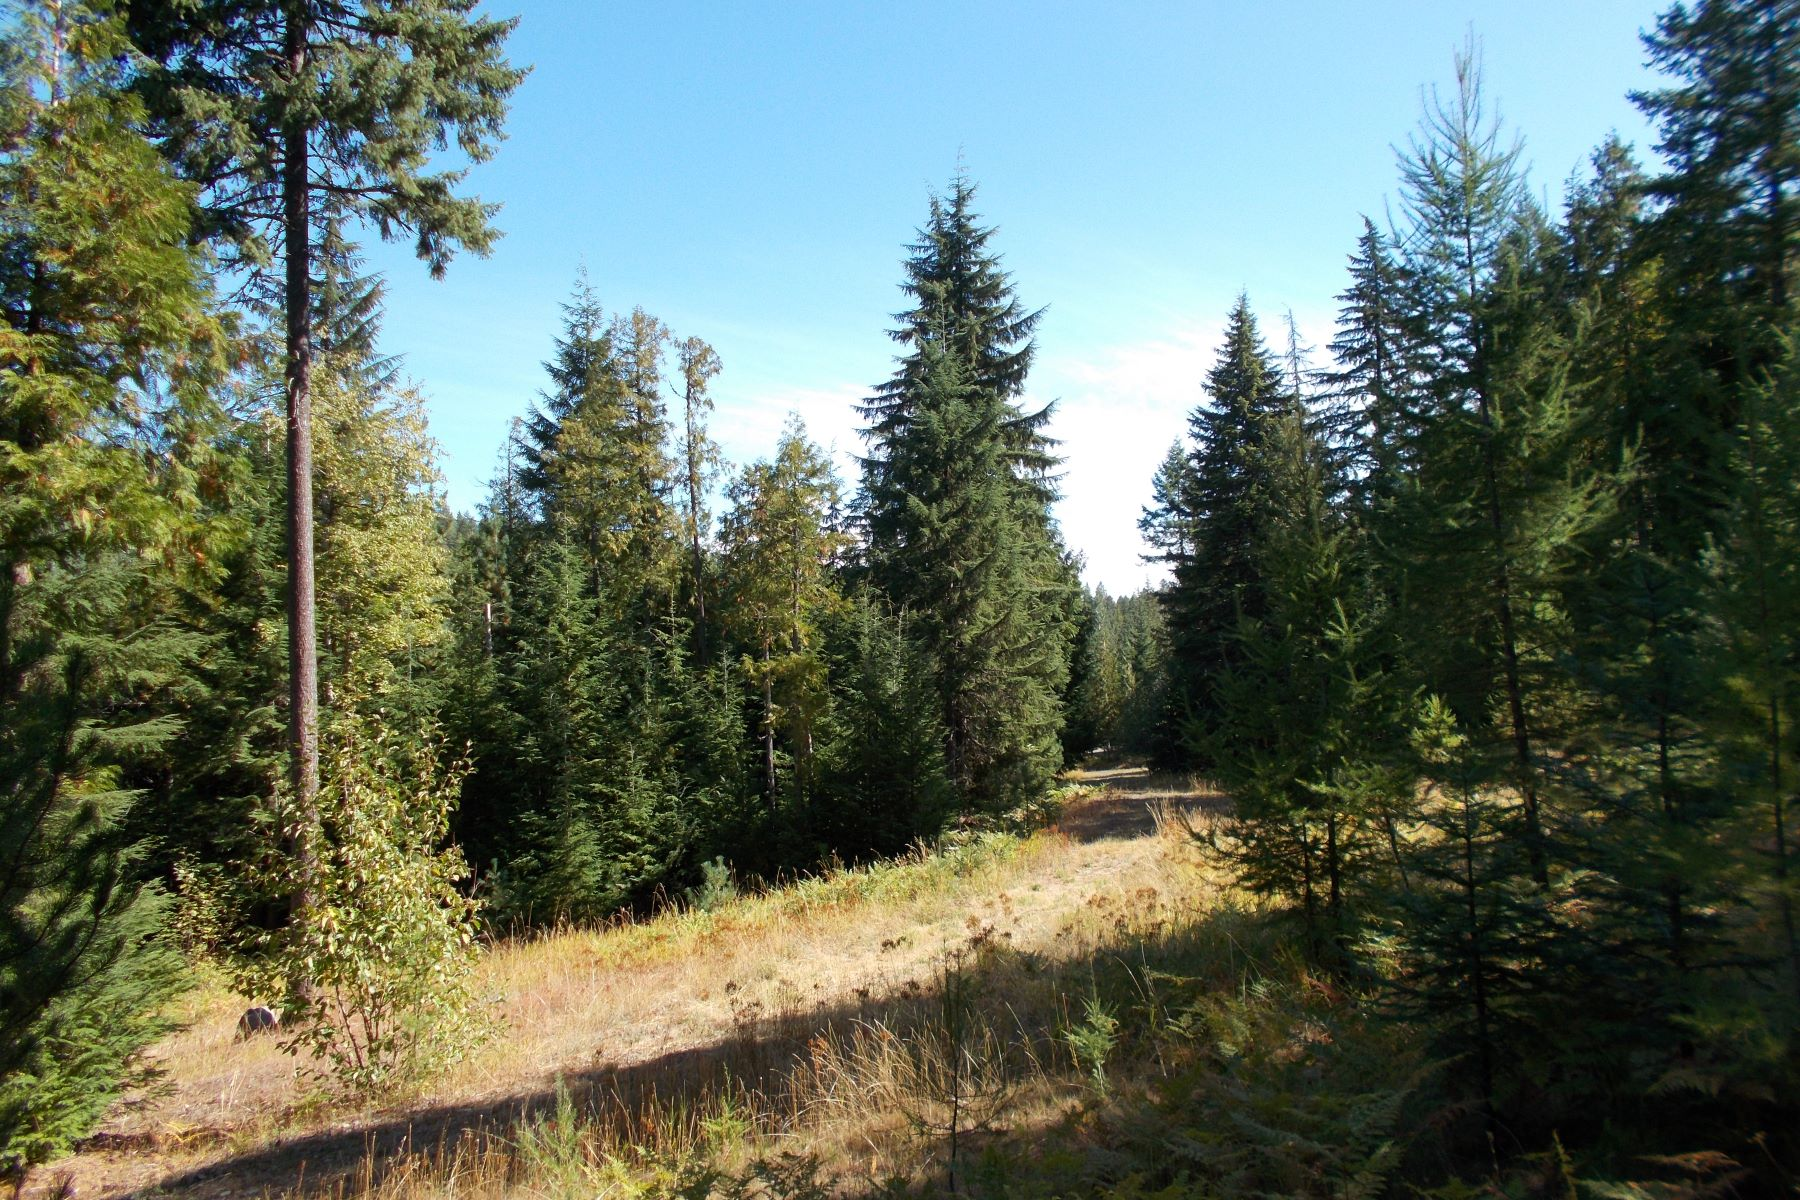 Land for Sale at 8+ acres on paved road with existing well NNA Lot 3 Off Lakeshore Drive, Sagle, Idaho, 83860 United States